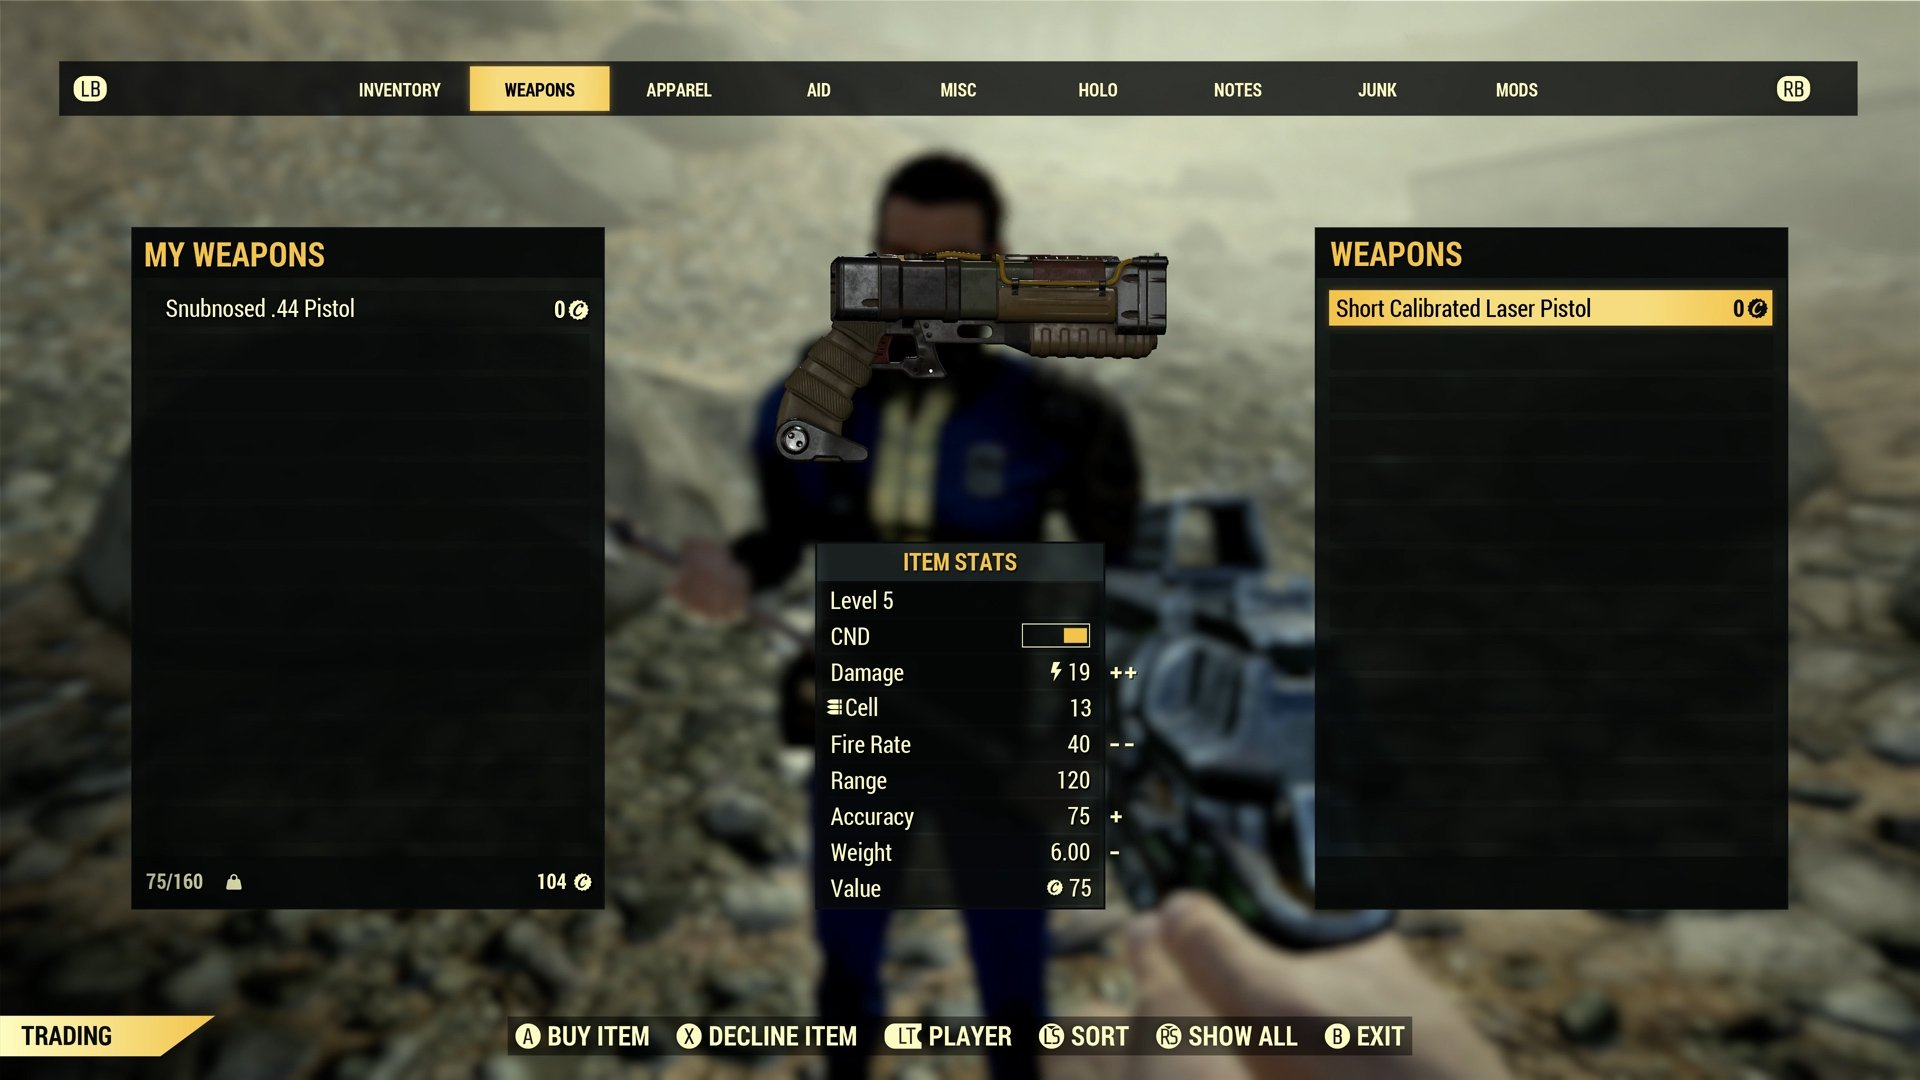 https://d1lss44hh2trtw.cloudfront.net/assets/editorial/2018/10/fallout-76-other-players-trade-items.jpg